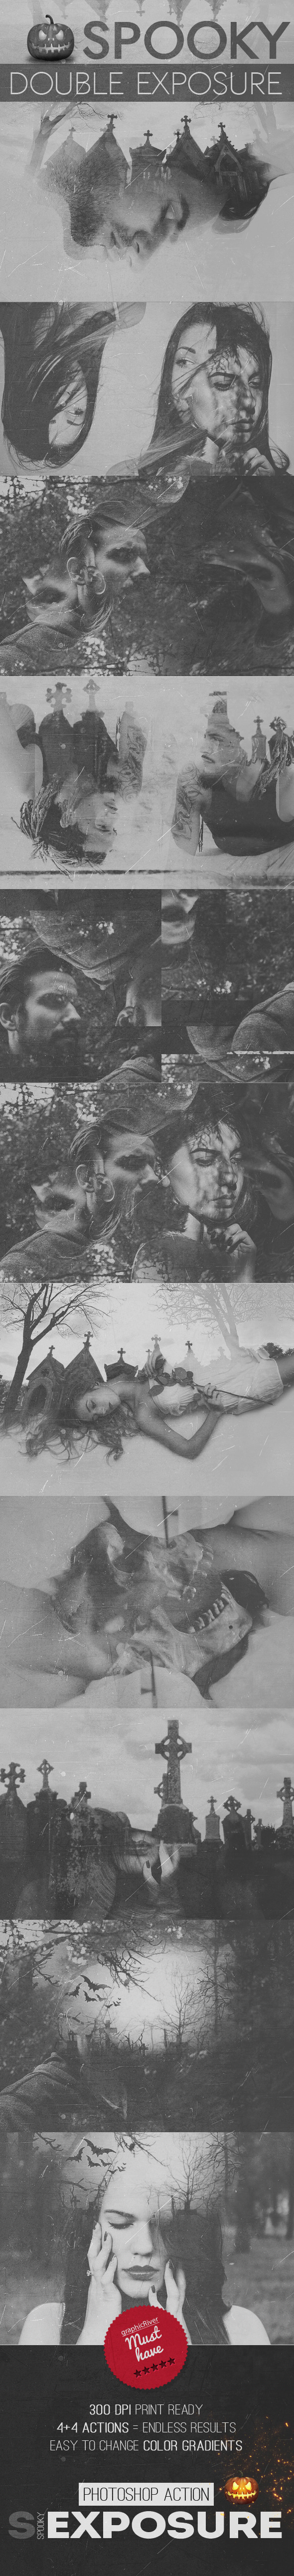 Spooky Double Exposure Photoshop Action - Photo Effects Actions